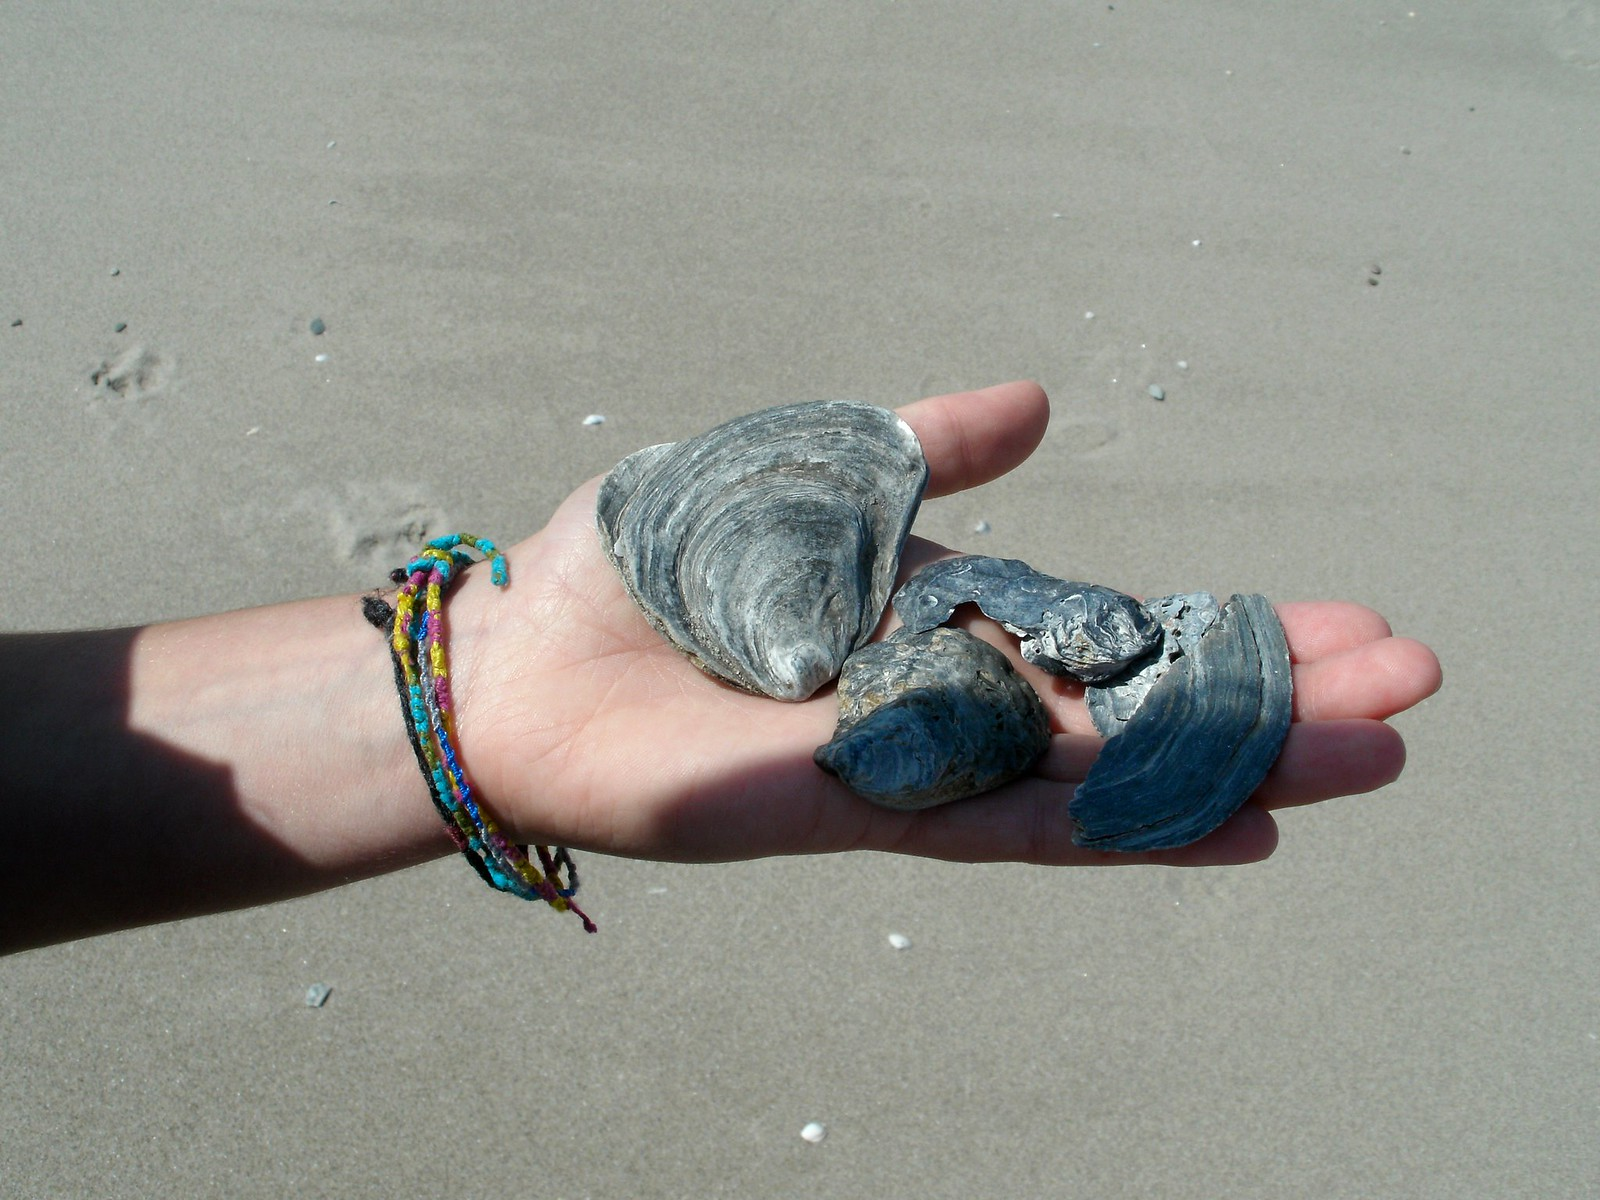 A girl showcases a few shells on her hand.